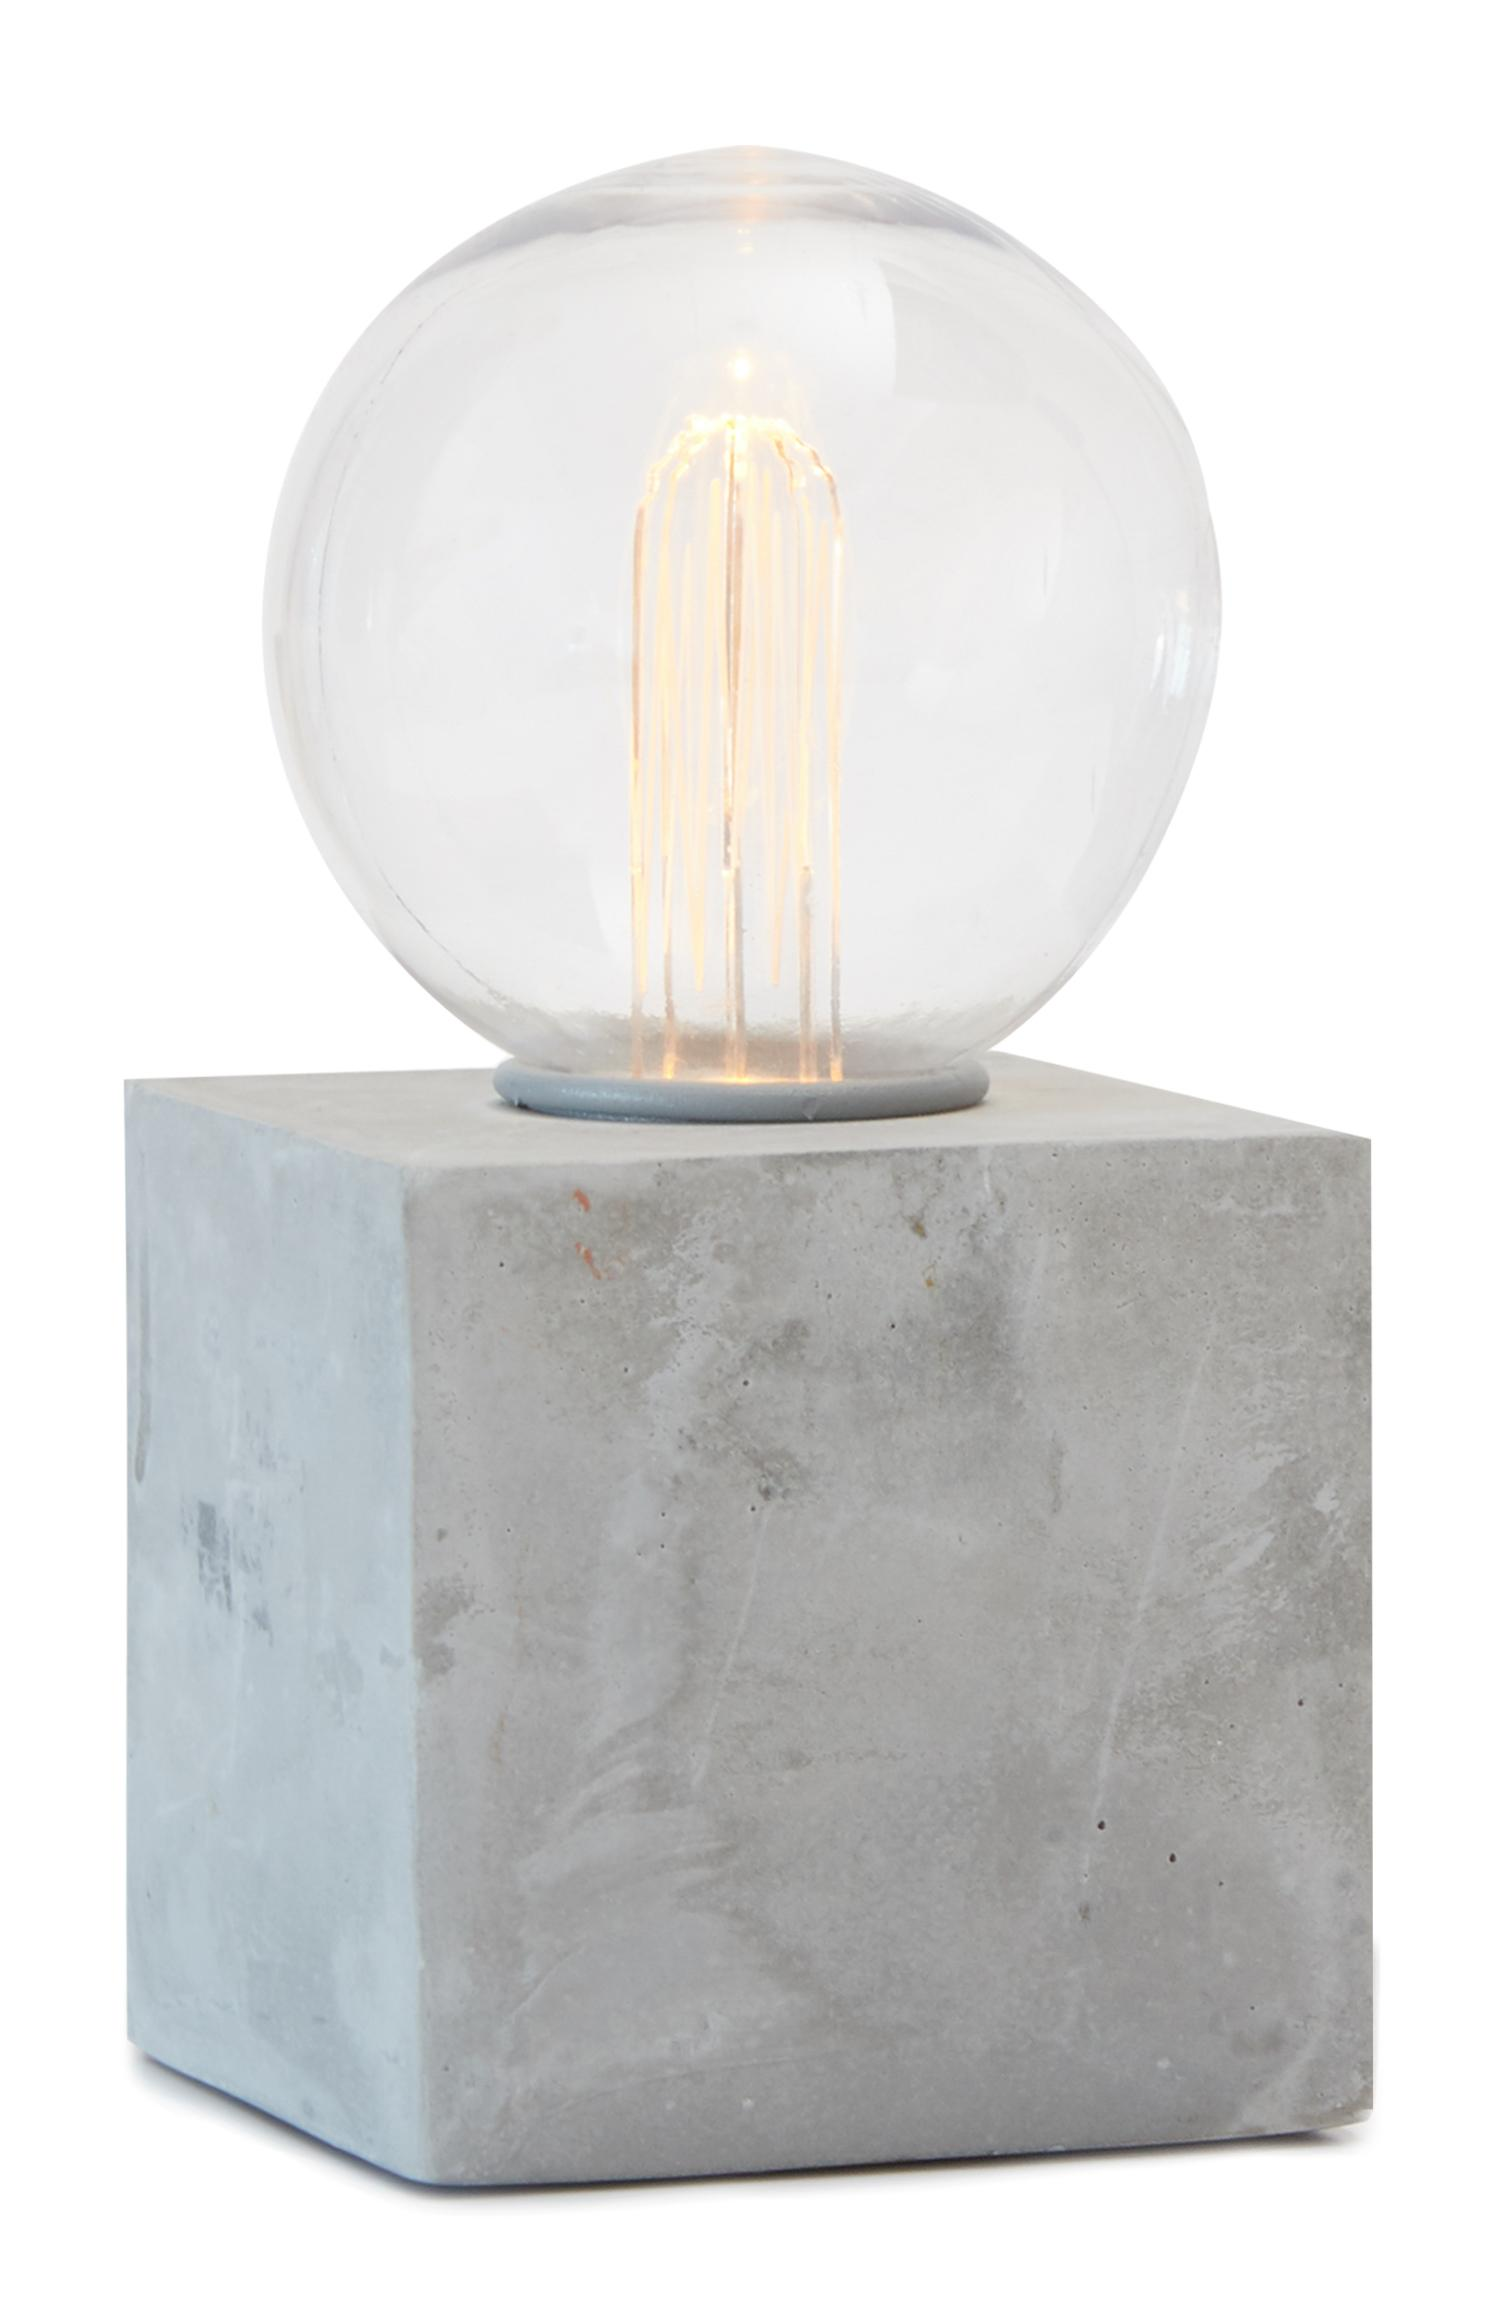 Ultra Modern Table Lamp Primark Is Selling A Stylish Version Of This Oliver Bonas Lamp